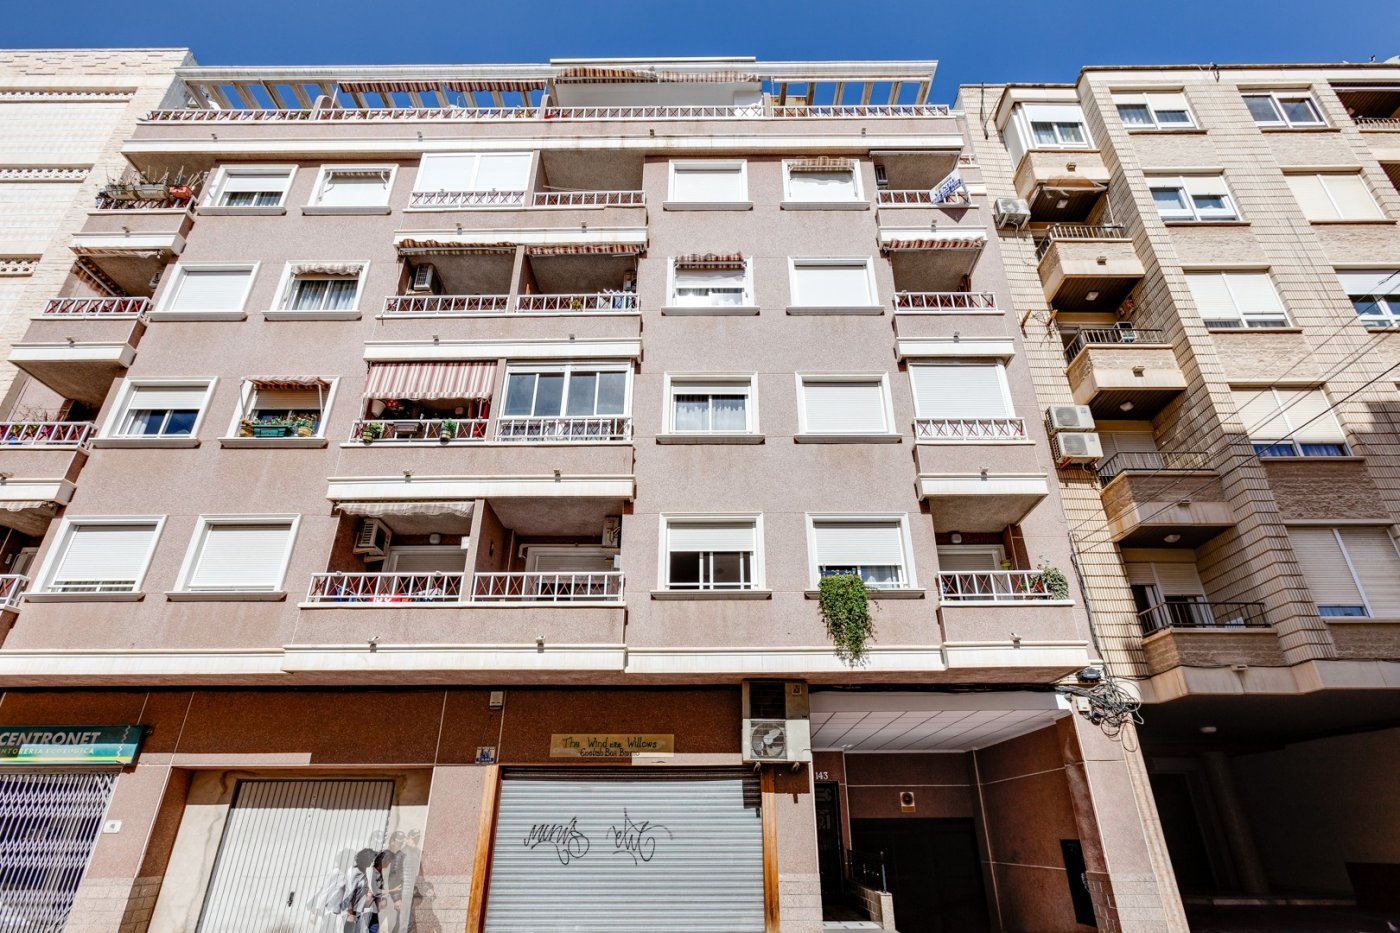 3 BEDROOM APARTMENT + TERRACE + GARAGE + STORAGE ROOM, 400 M FROM PLAYA DEL CURA IN TORREVIEJA